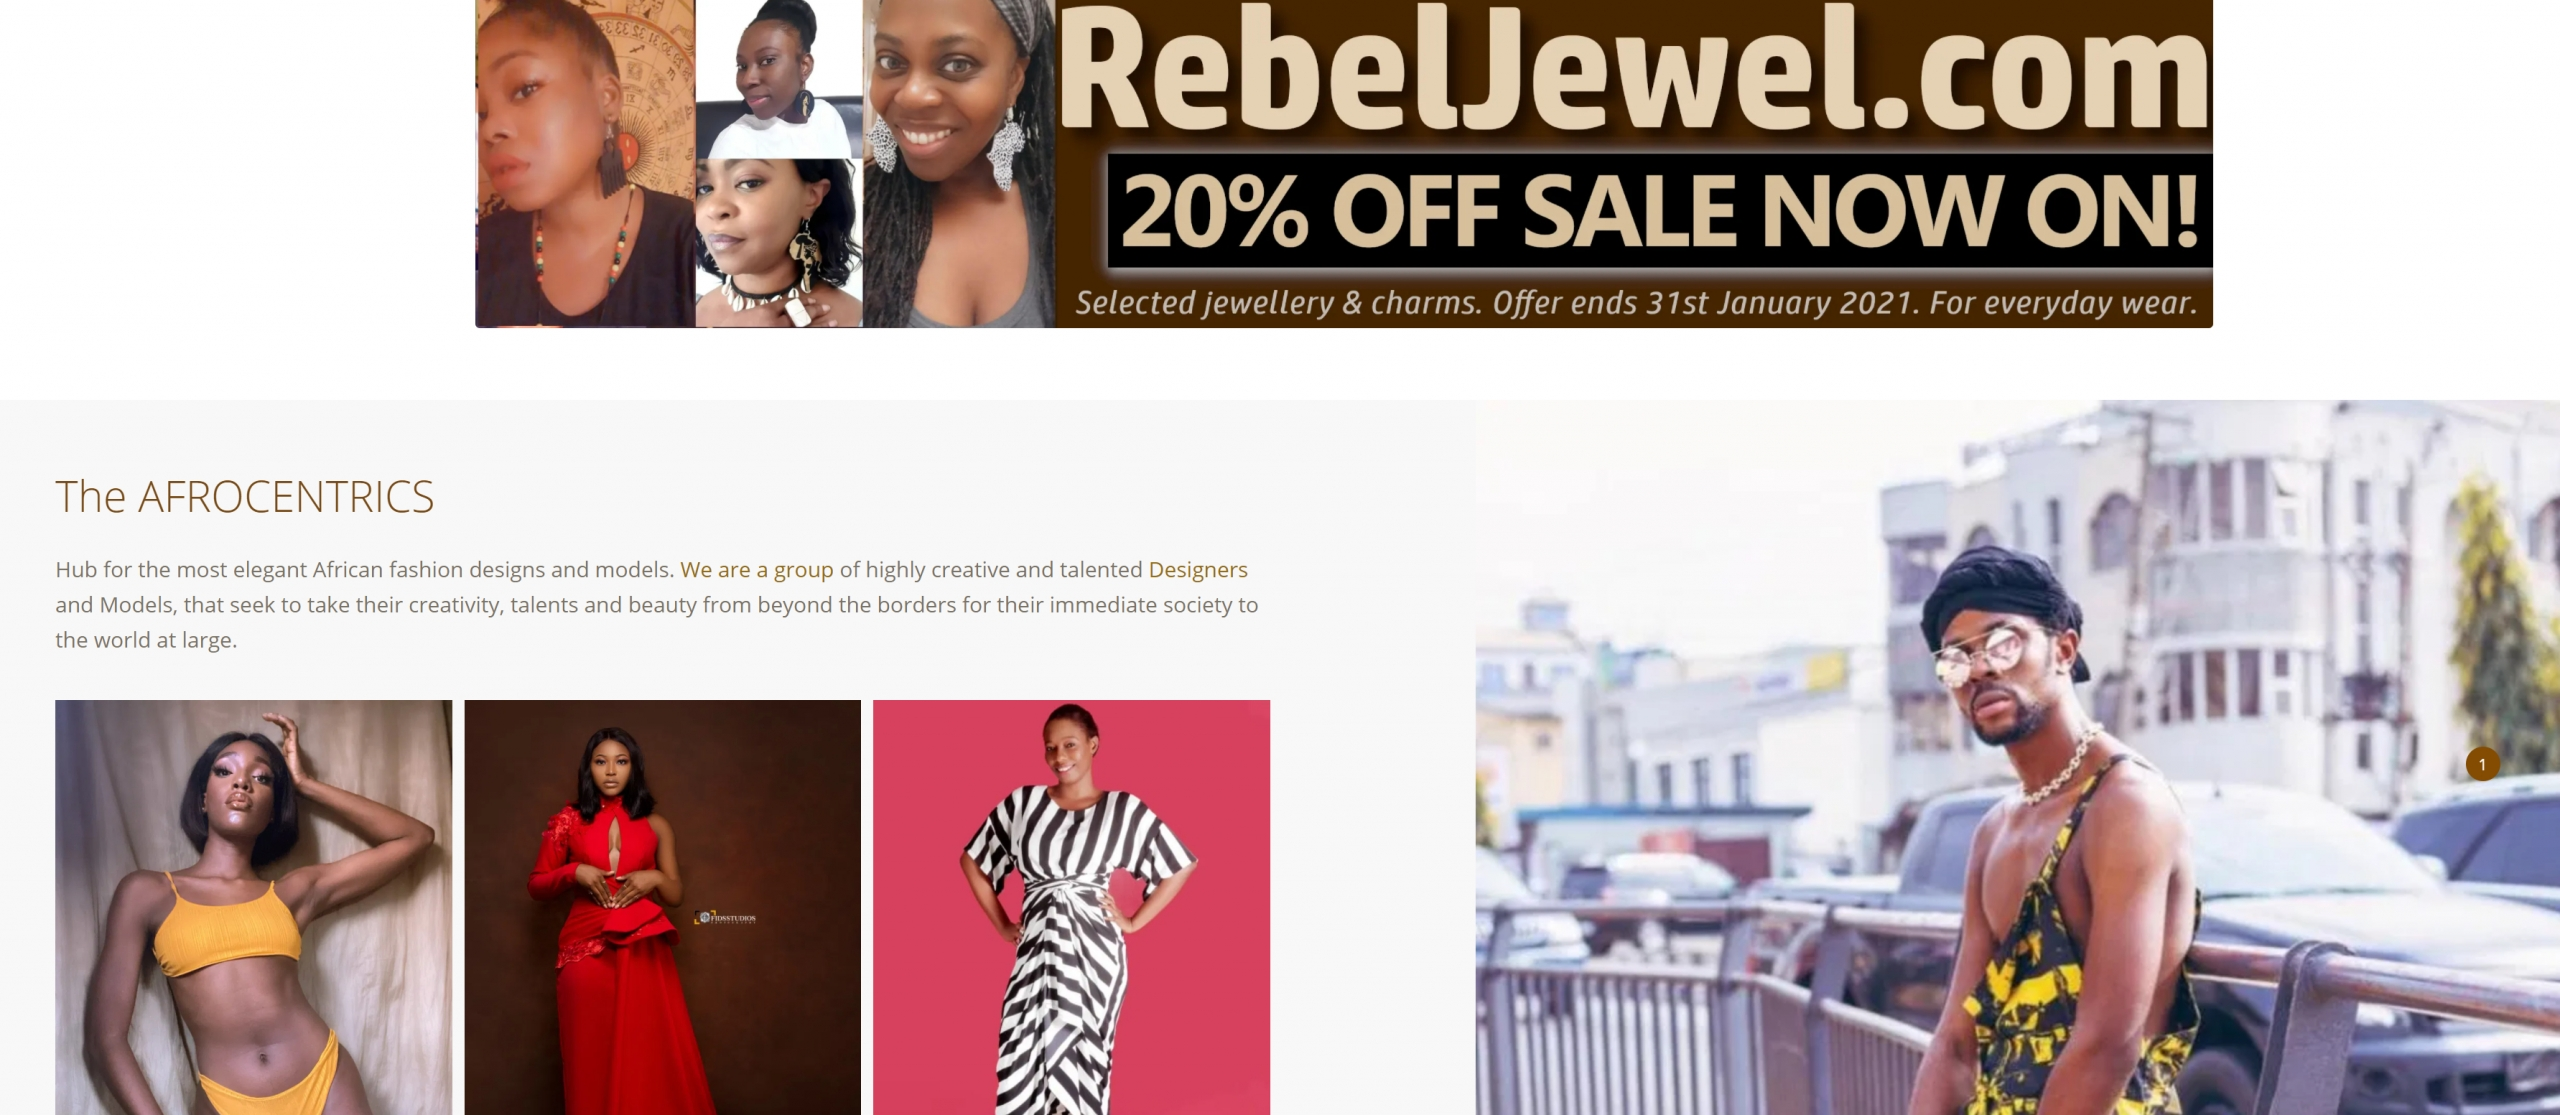 the afrocentrics african global fashion hub rebel jewel rebeljewel banner